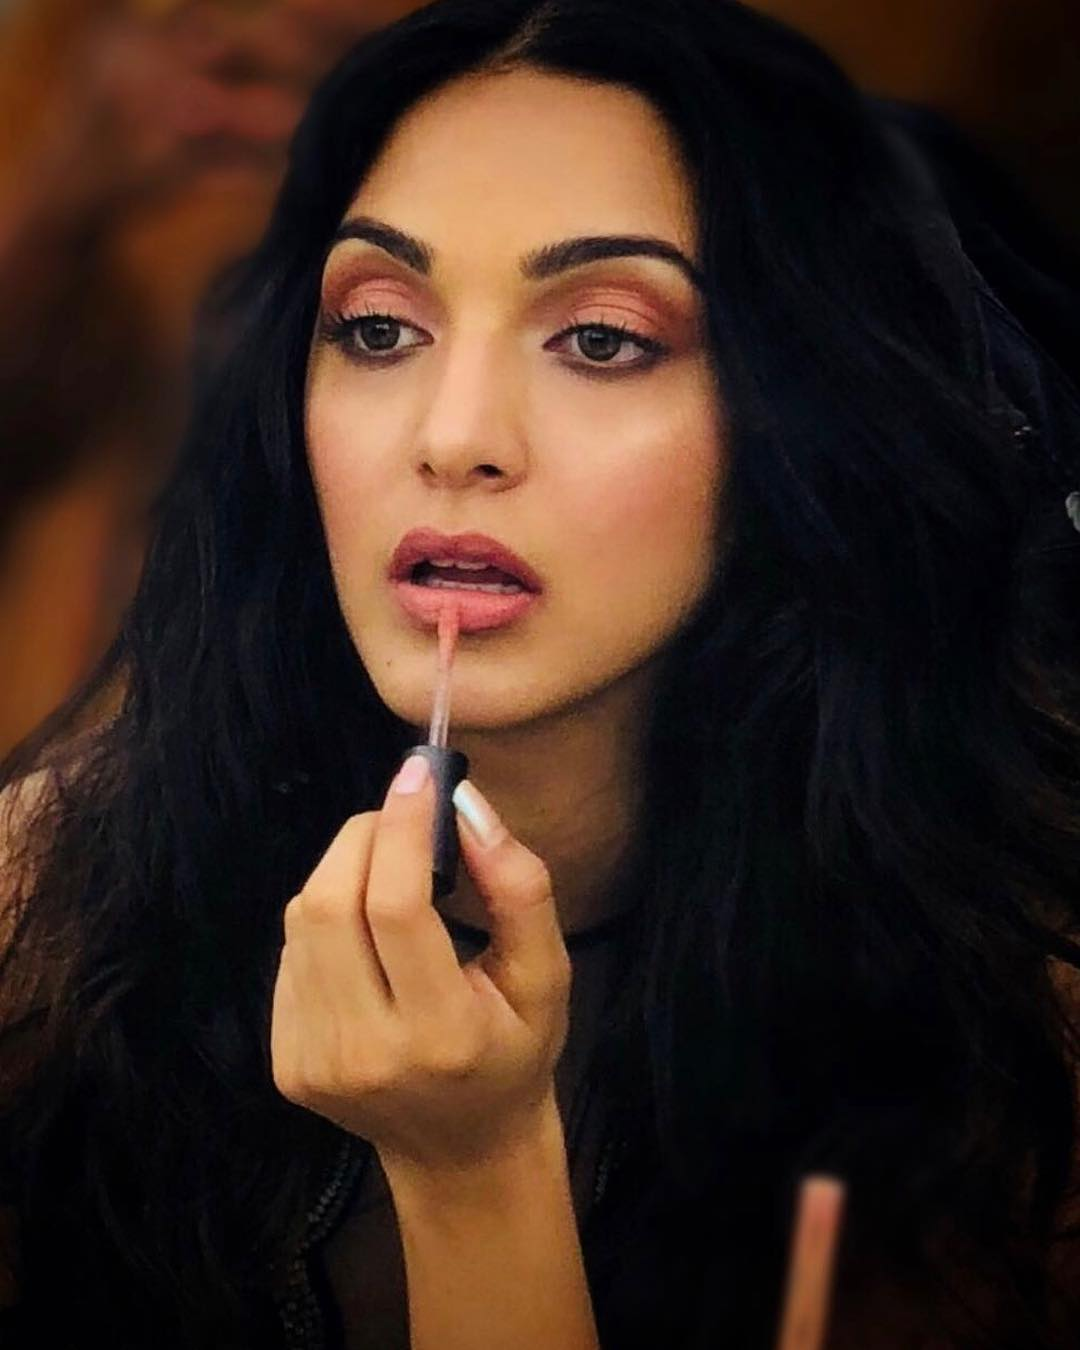 pantone-color-of-the-year-2019-best-coral-makeup-looks-bollywood-how-to-Kiara-Advani